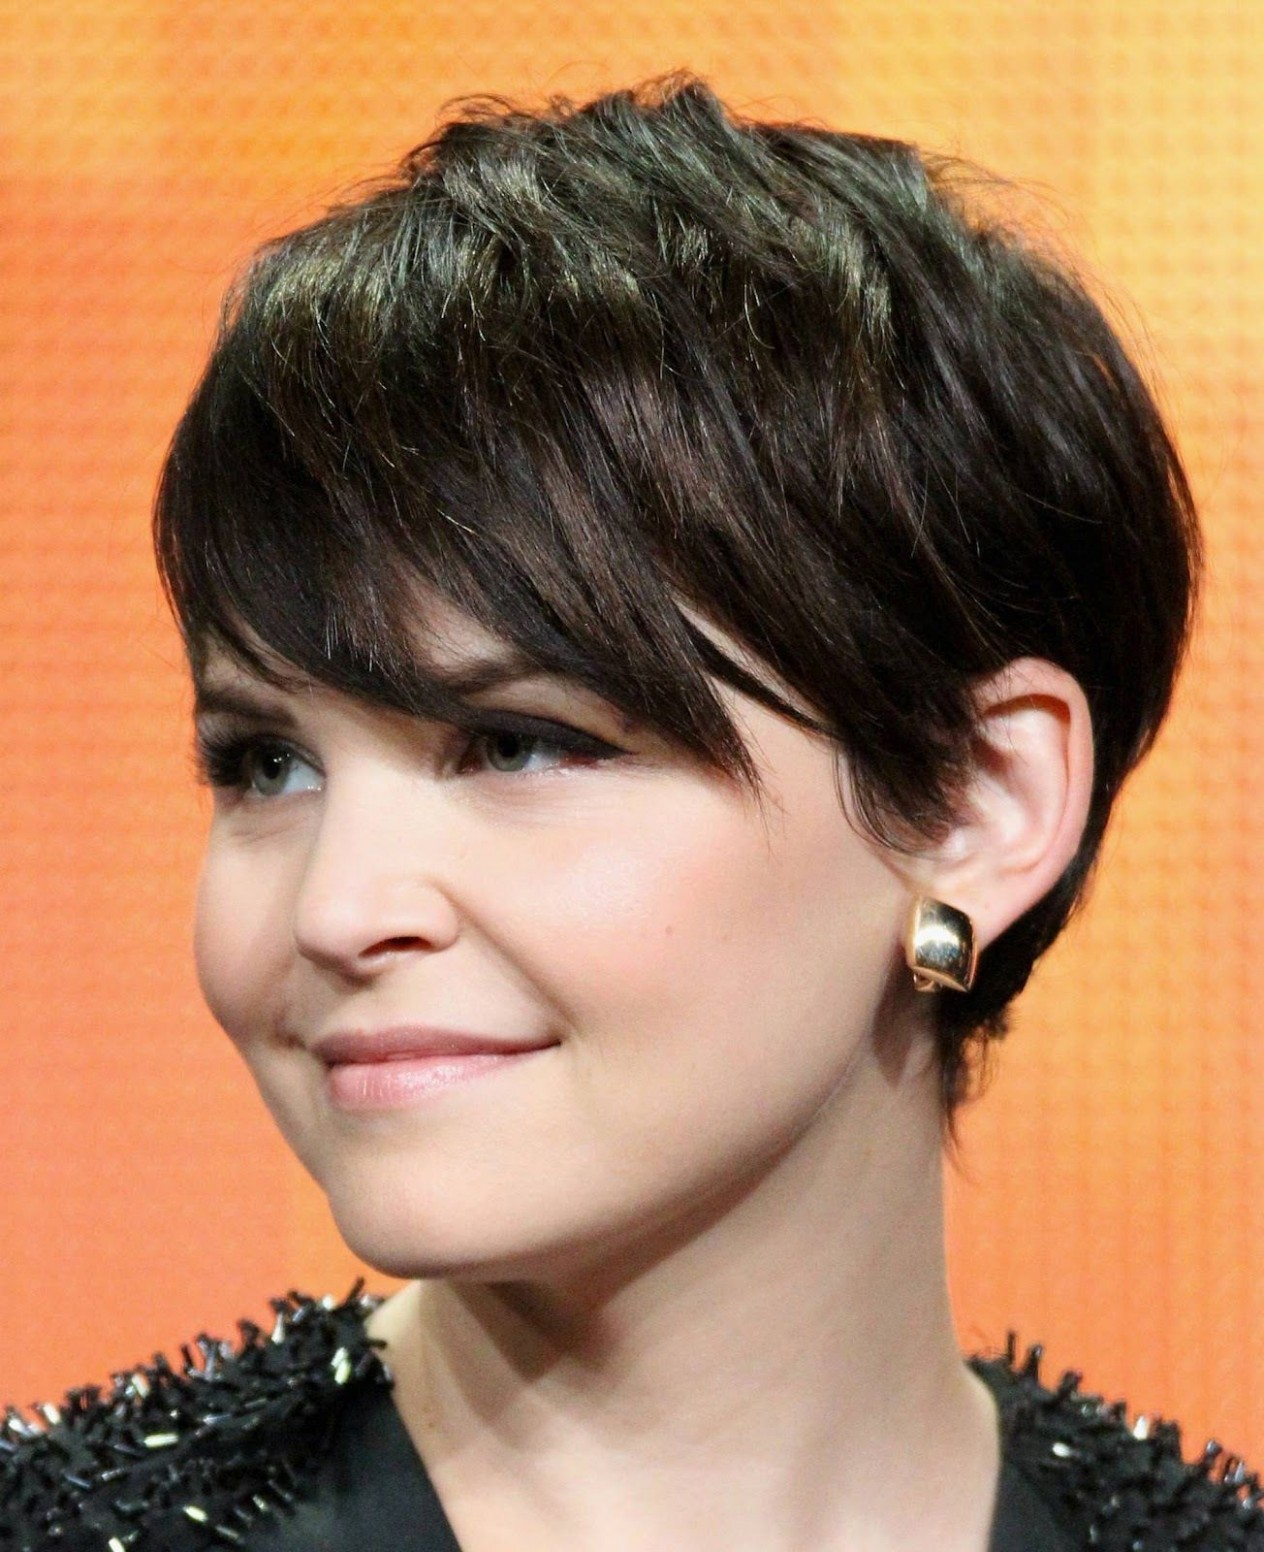 Pin On Haircuts Pixie Cut For Chubby Face